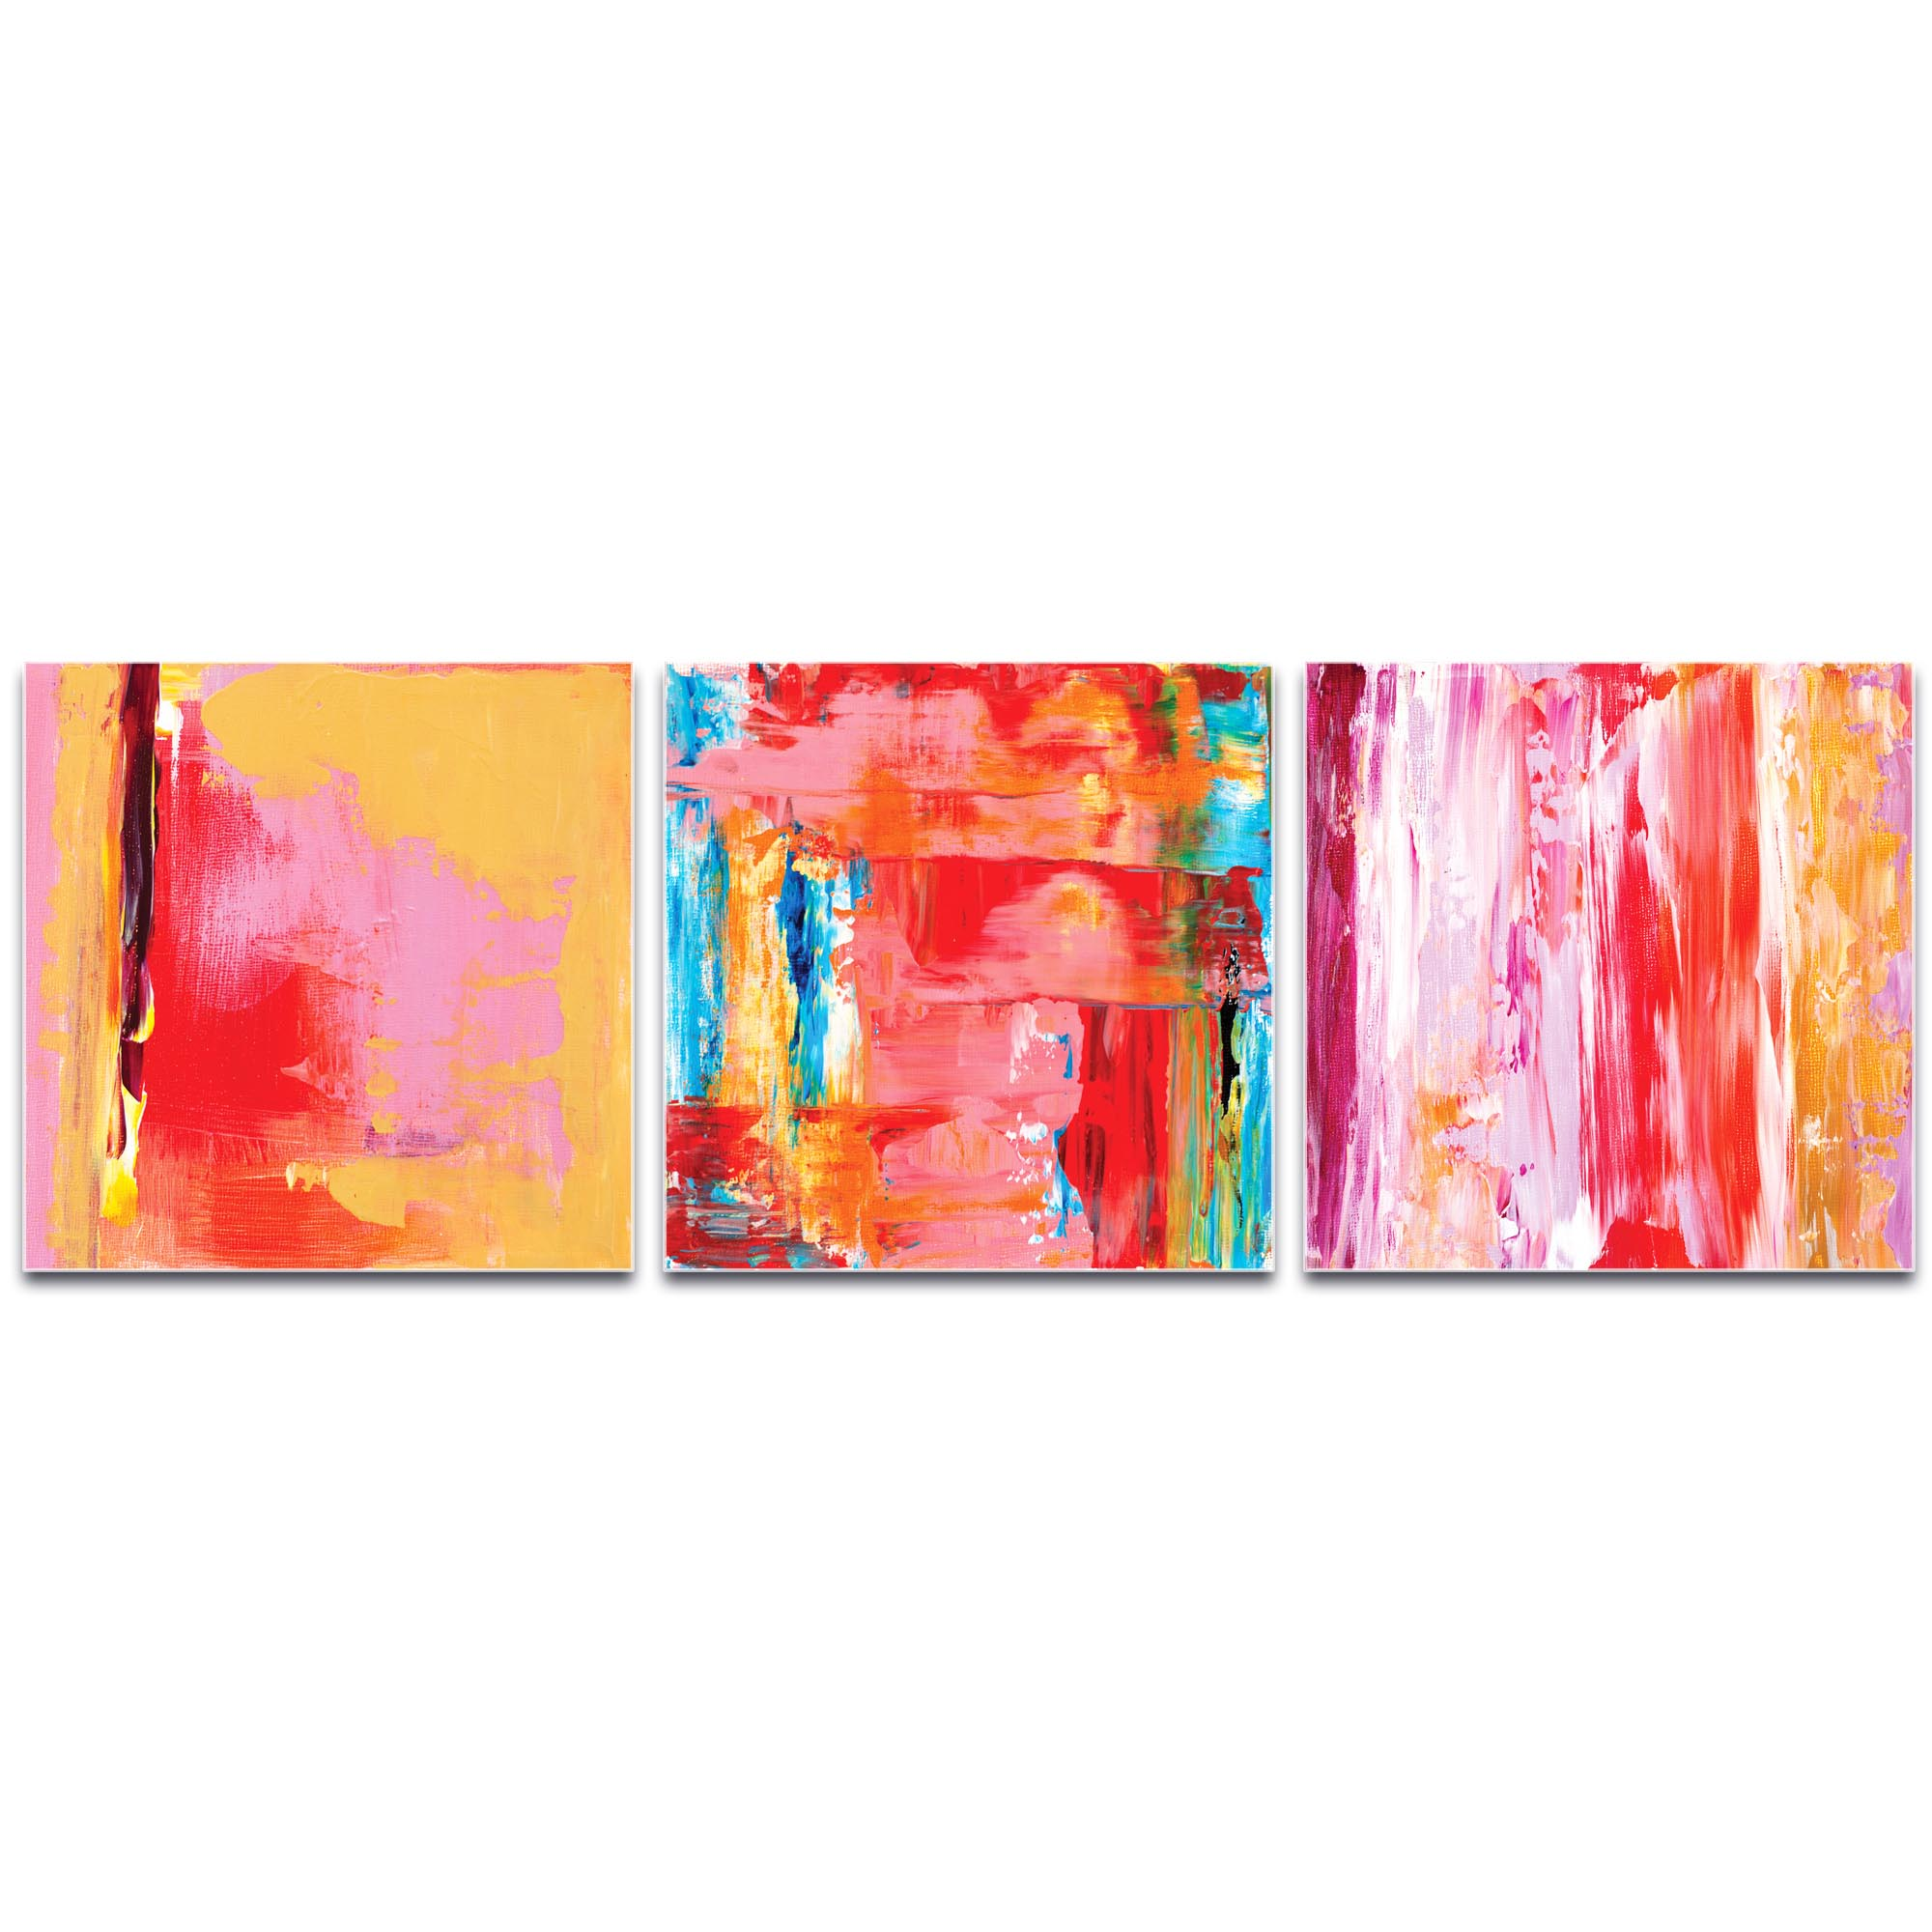 Abstract Wall Art 'Urban Triptych 3' - Urban Decor on Metal or Plexiglass - Image 2